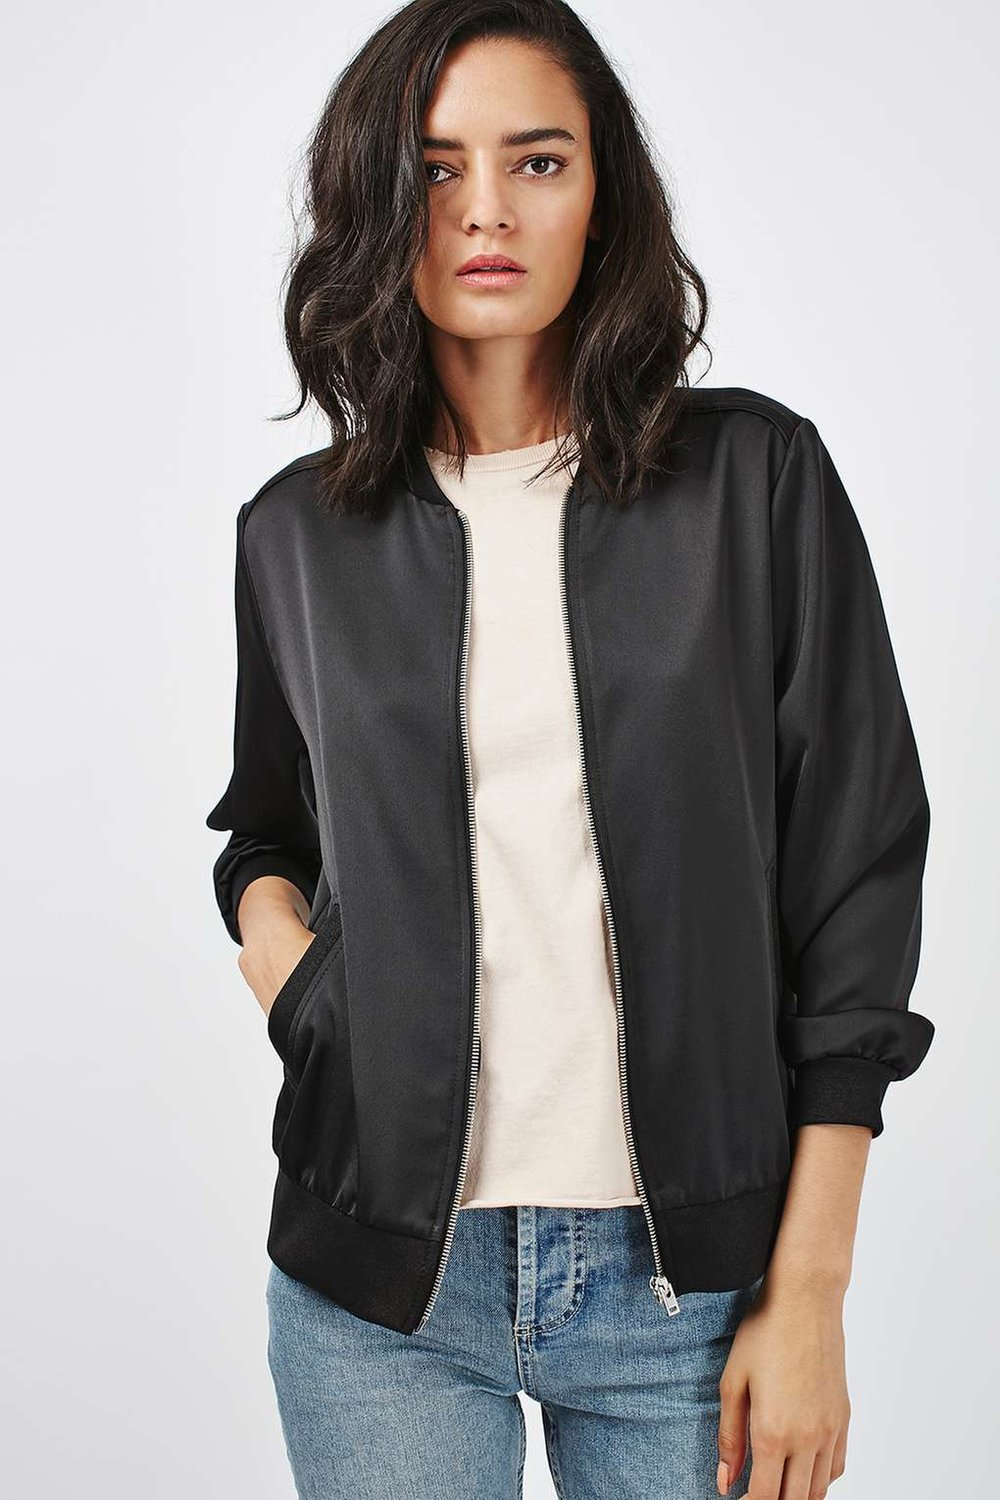 Mmm Satiny Bomber Jacket Goodness From Your Neighborhood Topshop